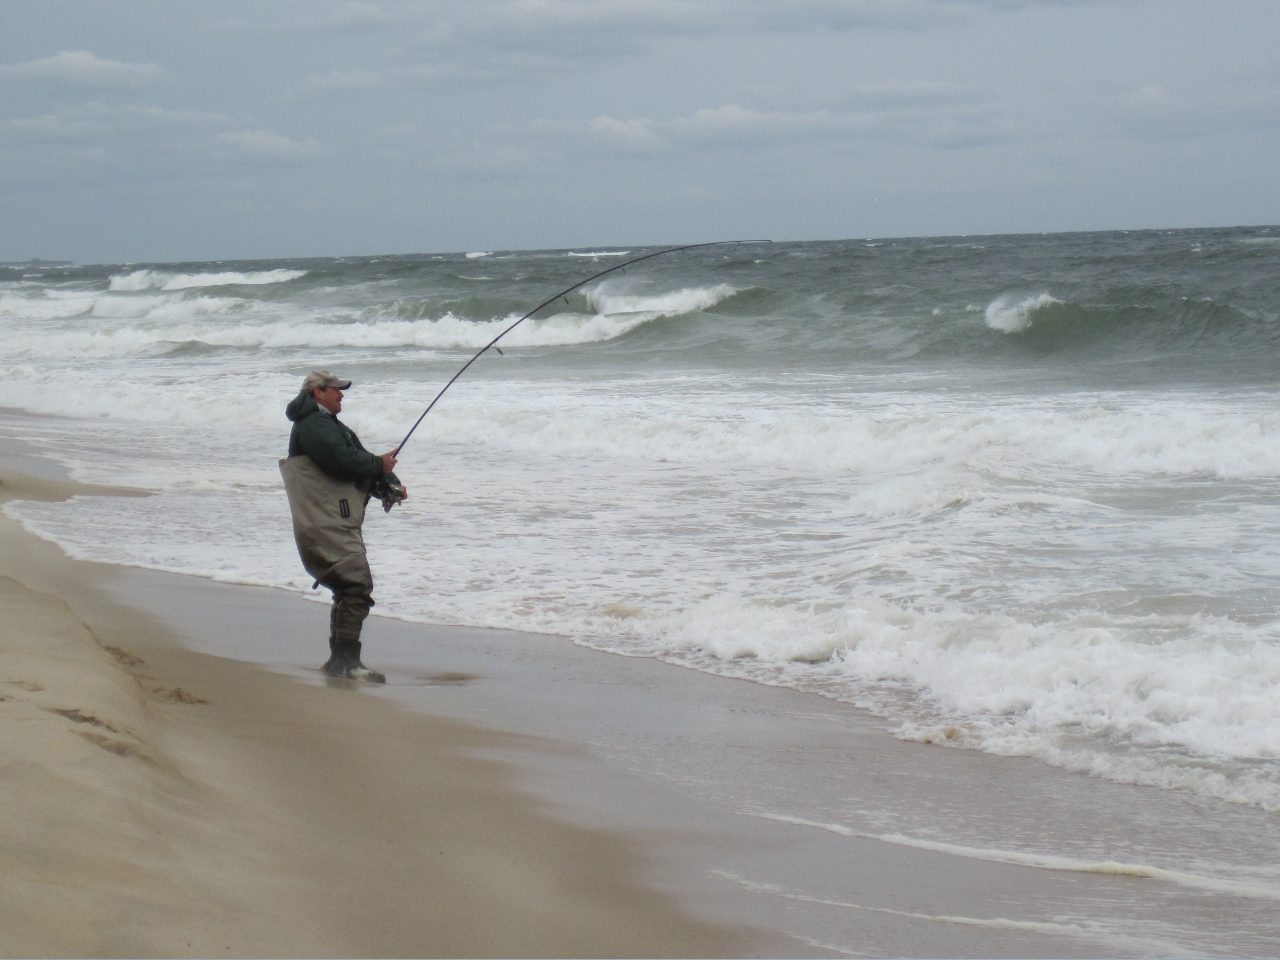 Man surfcasting on cloudy day